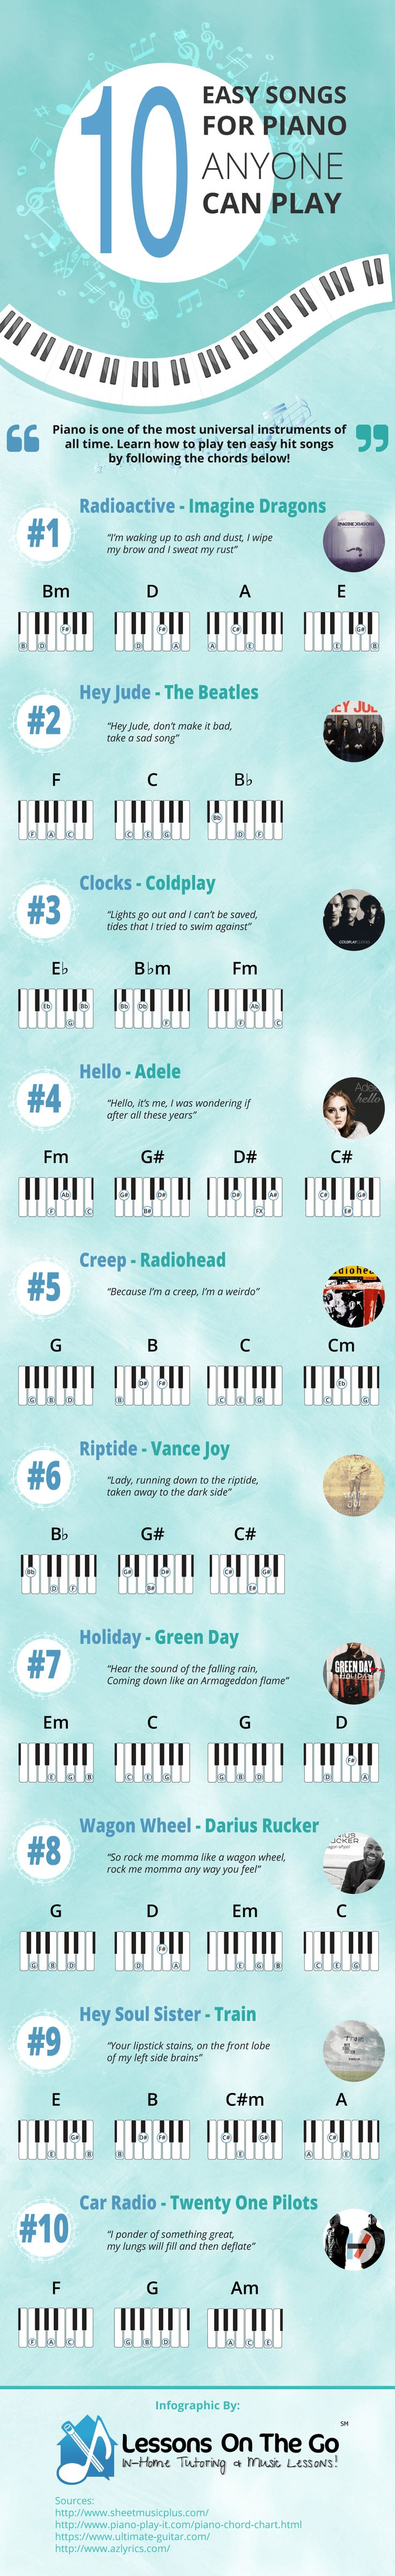 HOW TO PLAY 10 HIT SONGS ON PIANO #INFOGRAPHIC #PIANO #EDUCATION